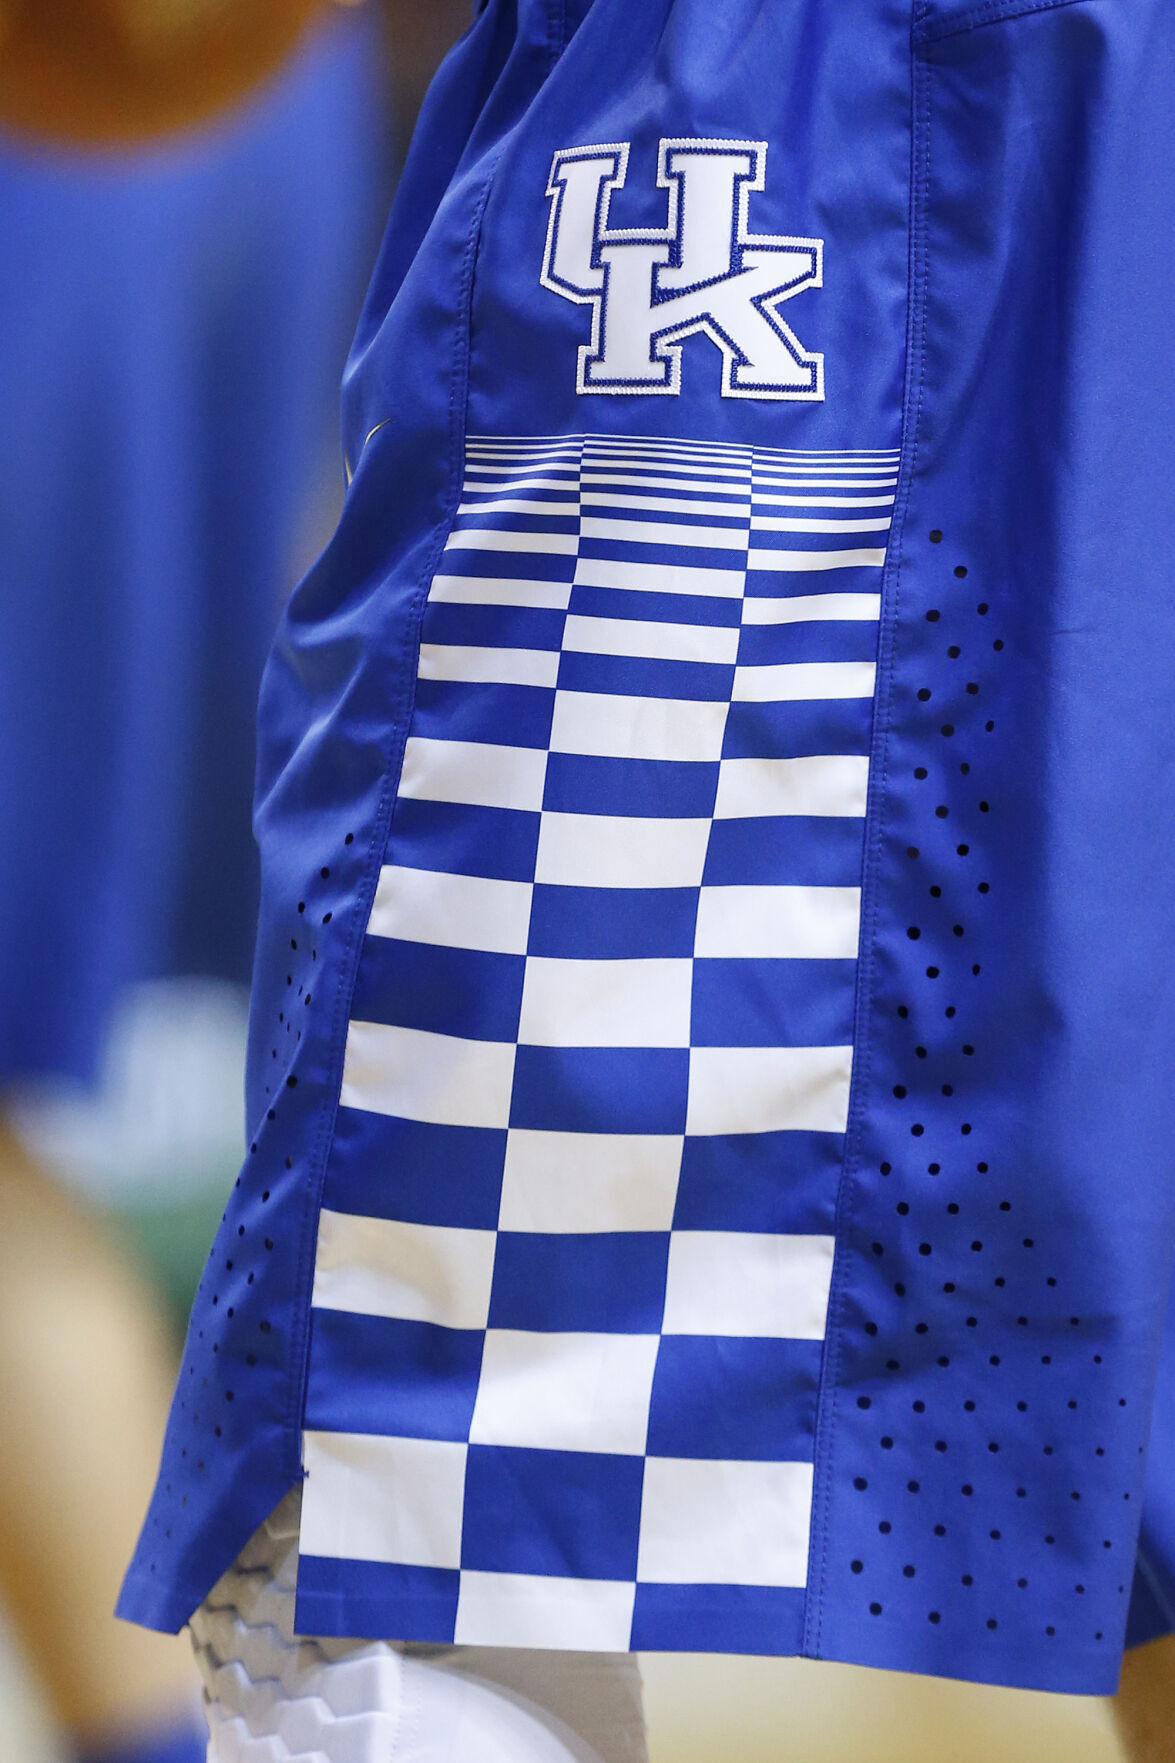 The Kentucky Wildcats logo on a player's shorts prior to a 2015 game against South Florida at the American Airlines Arena in Miami.